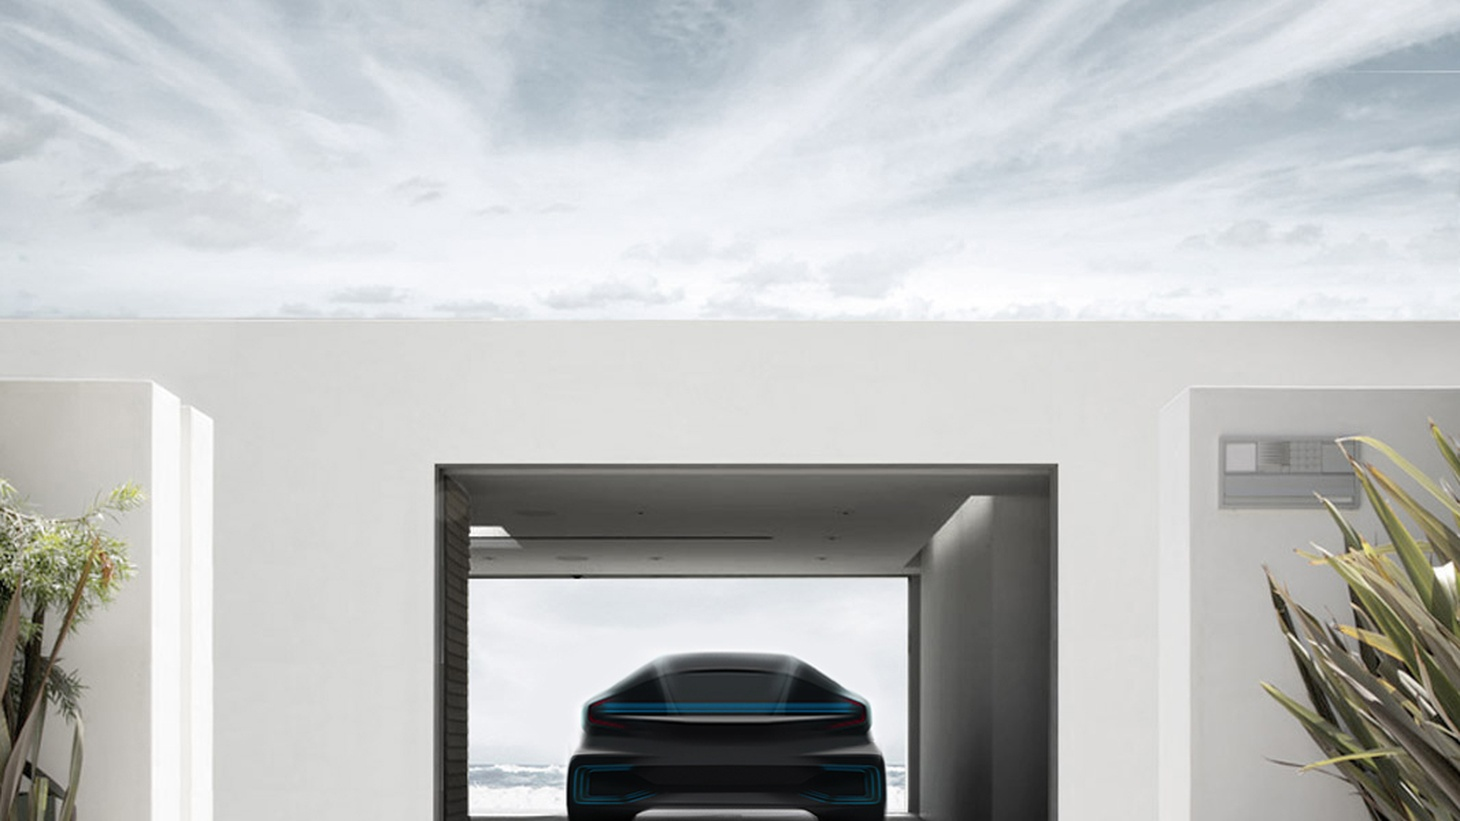 Faraday Future, an electric car startup, looks to compete with Tesla. A graphic designer pays tribute to the Black Panthers. And a film about American road trips asks whether mobility is still a path to self-discovery.